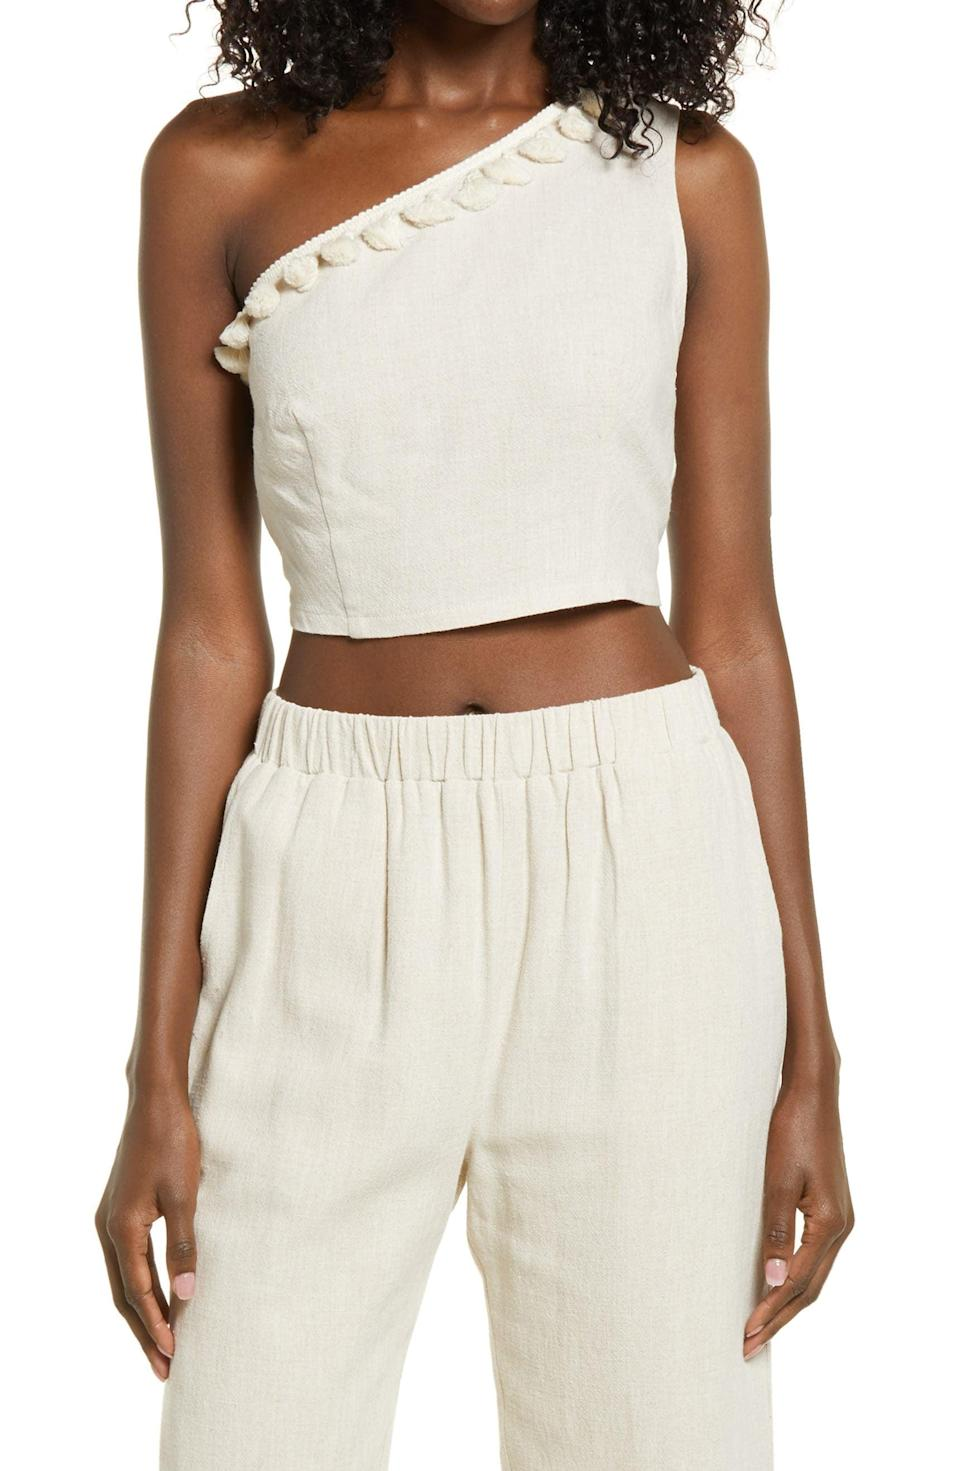 <p>This <span>LulusOne-Shoulder Crop Top</span> ($38) is a great choice for any outing. Pair it with the matching <span>Lulus Crop Flare Pants</span> ($48) for a statement neutral look.</p>